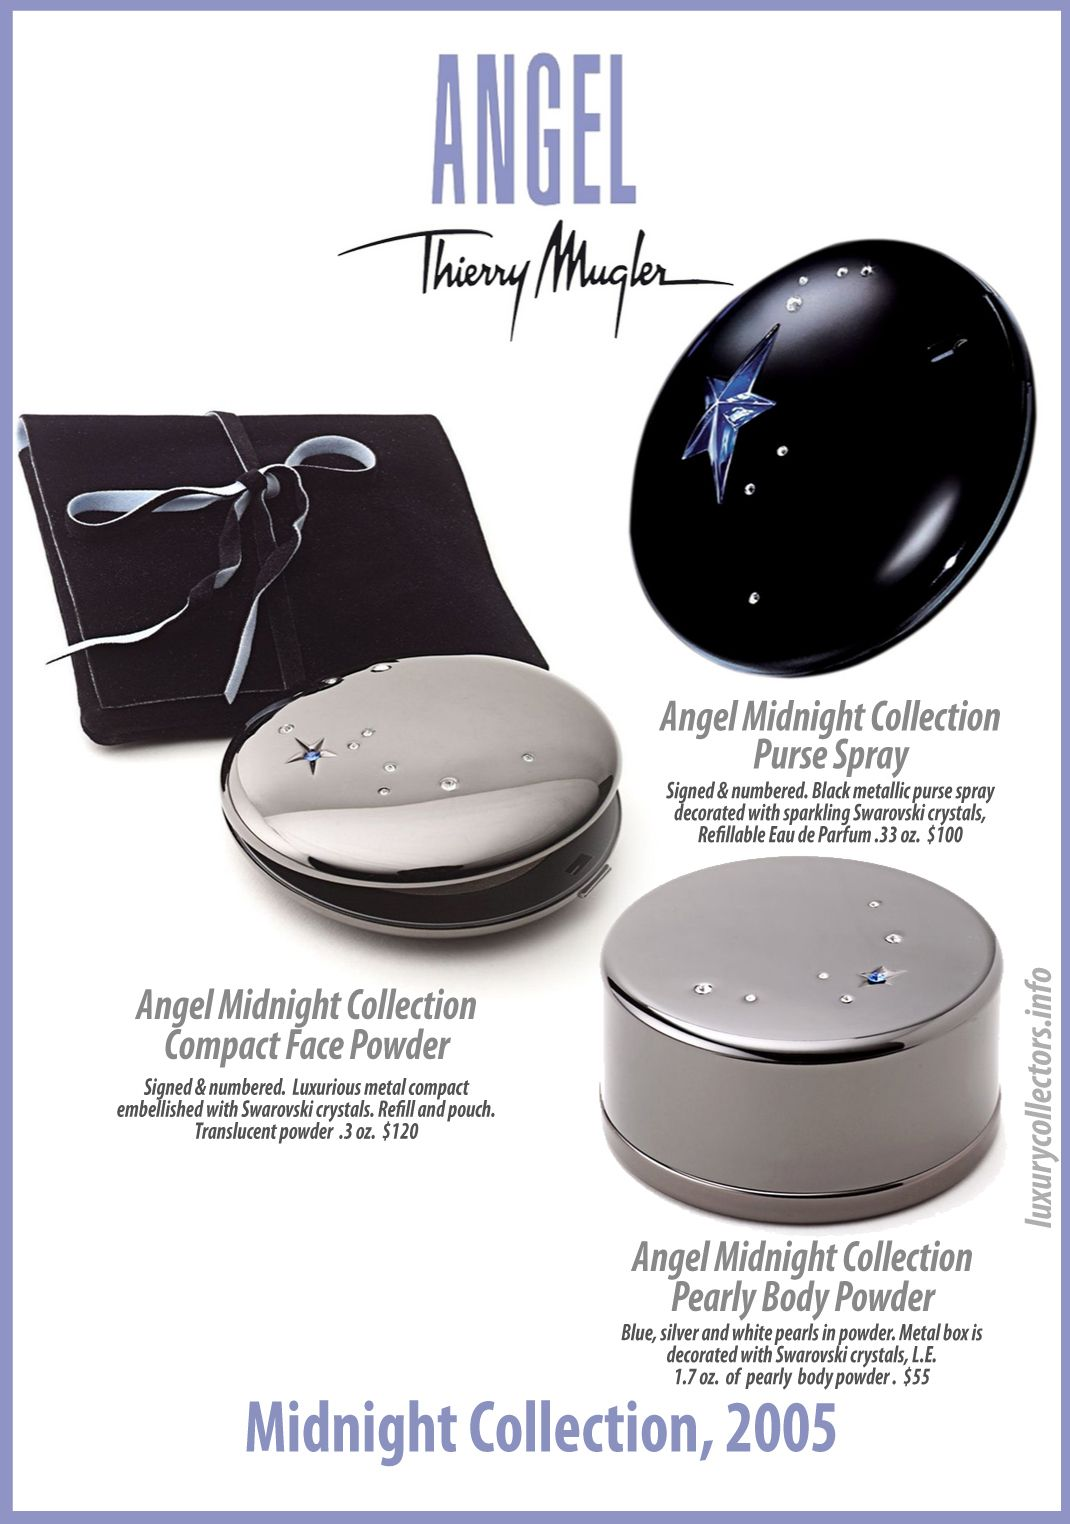 Thierry Mugler Angel Perfume Collectors Limited Edition Bottle 2005